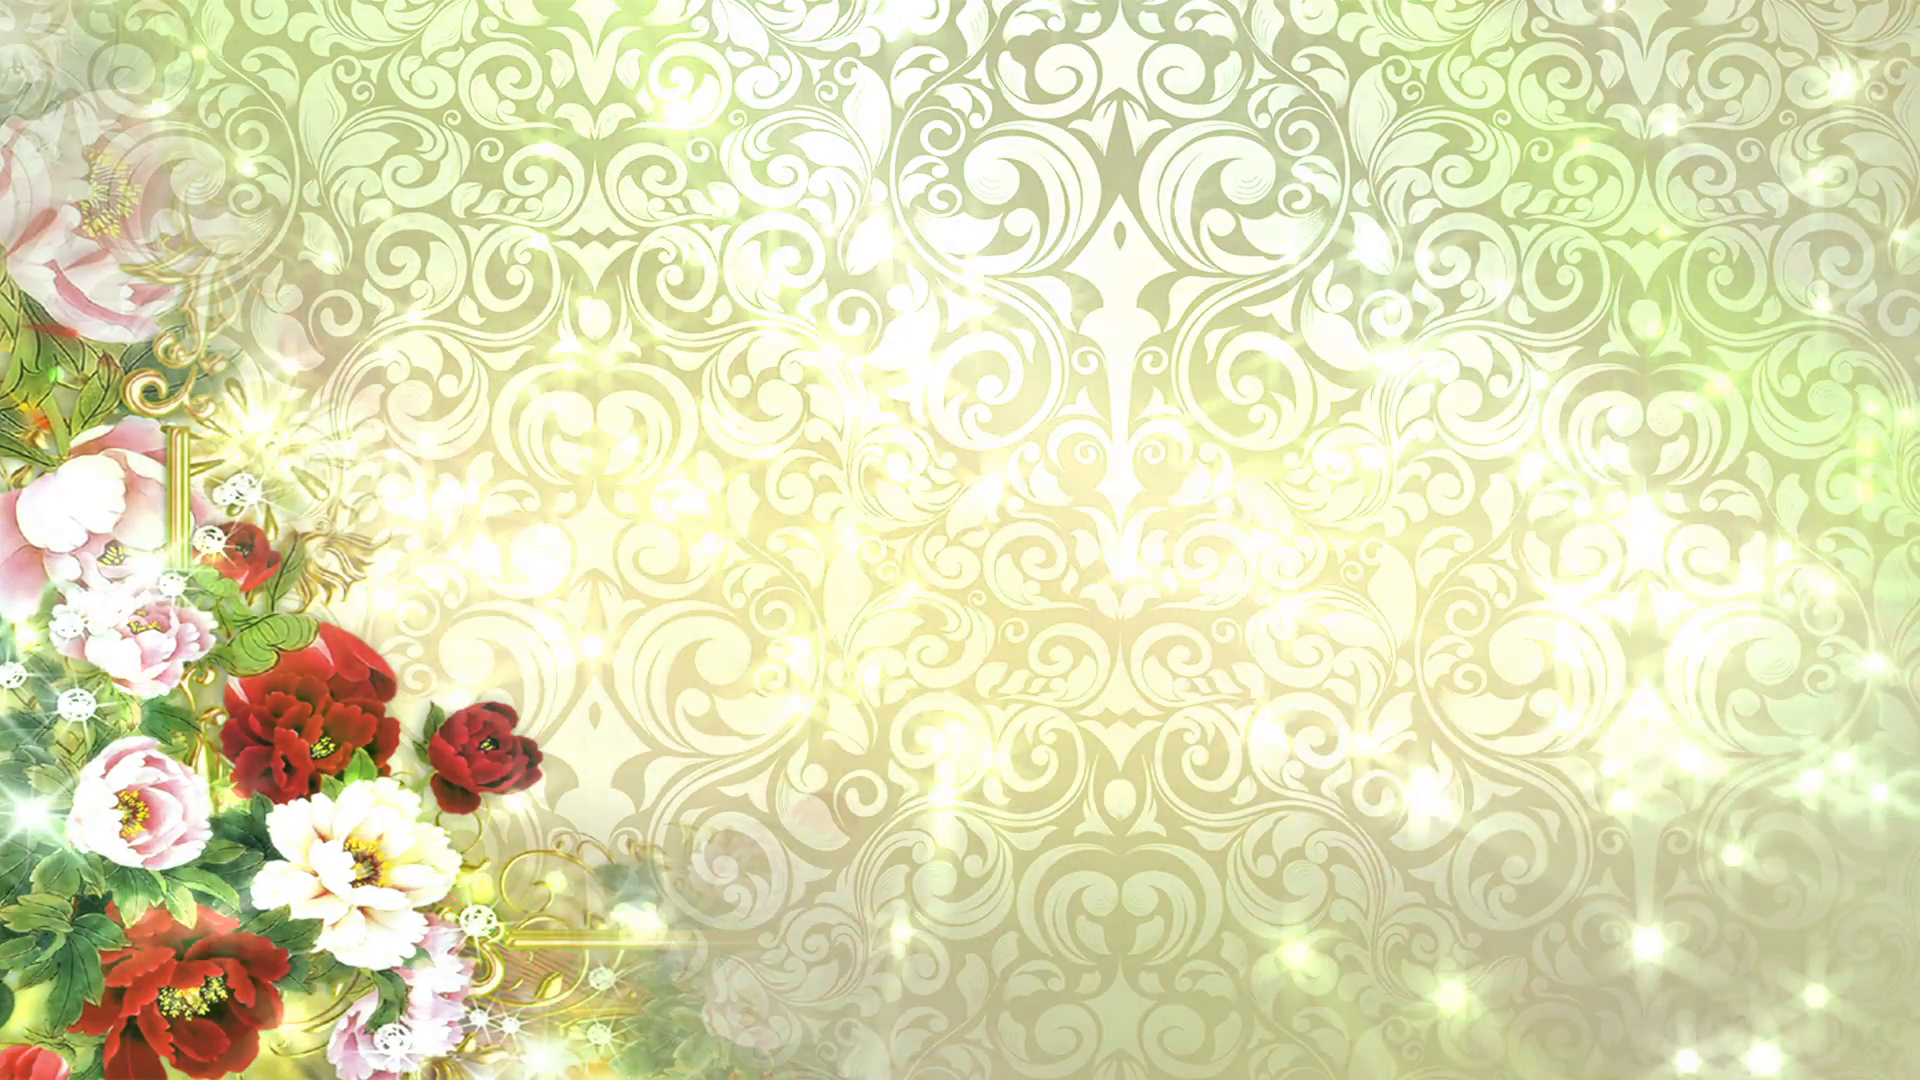 Wedding Background Images Hd Png , (+) Pictures.